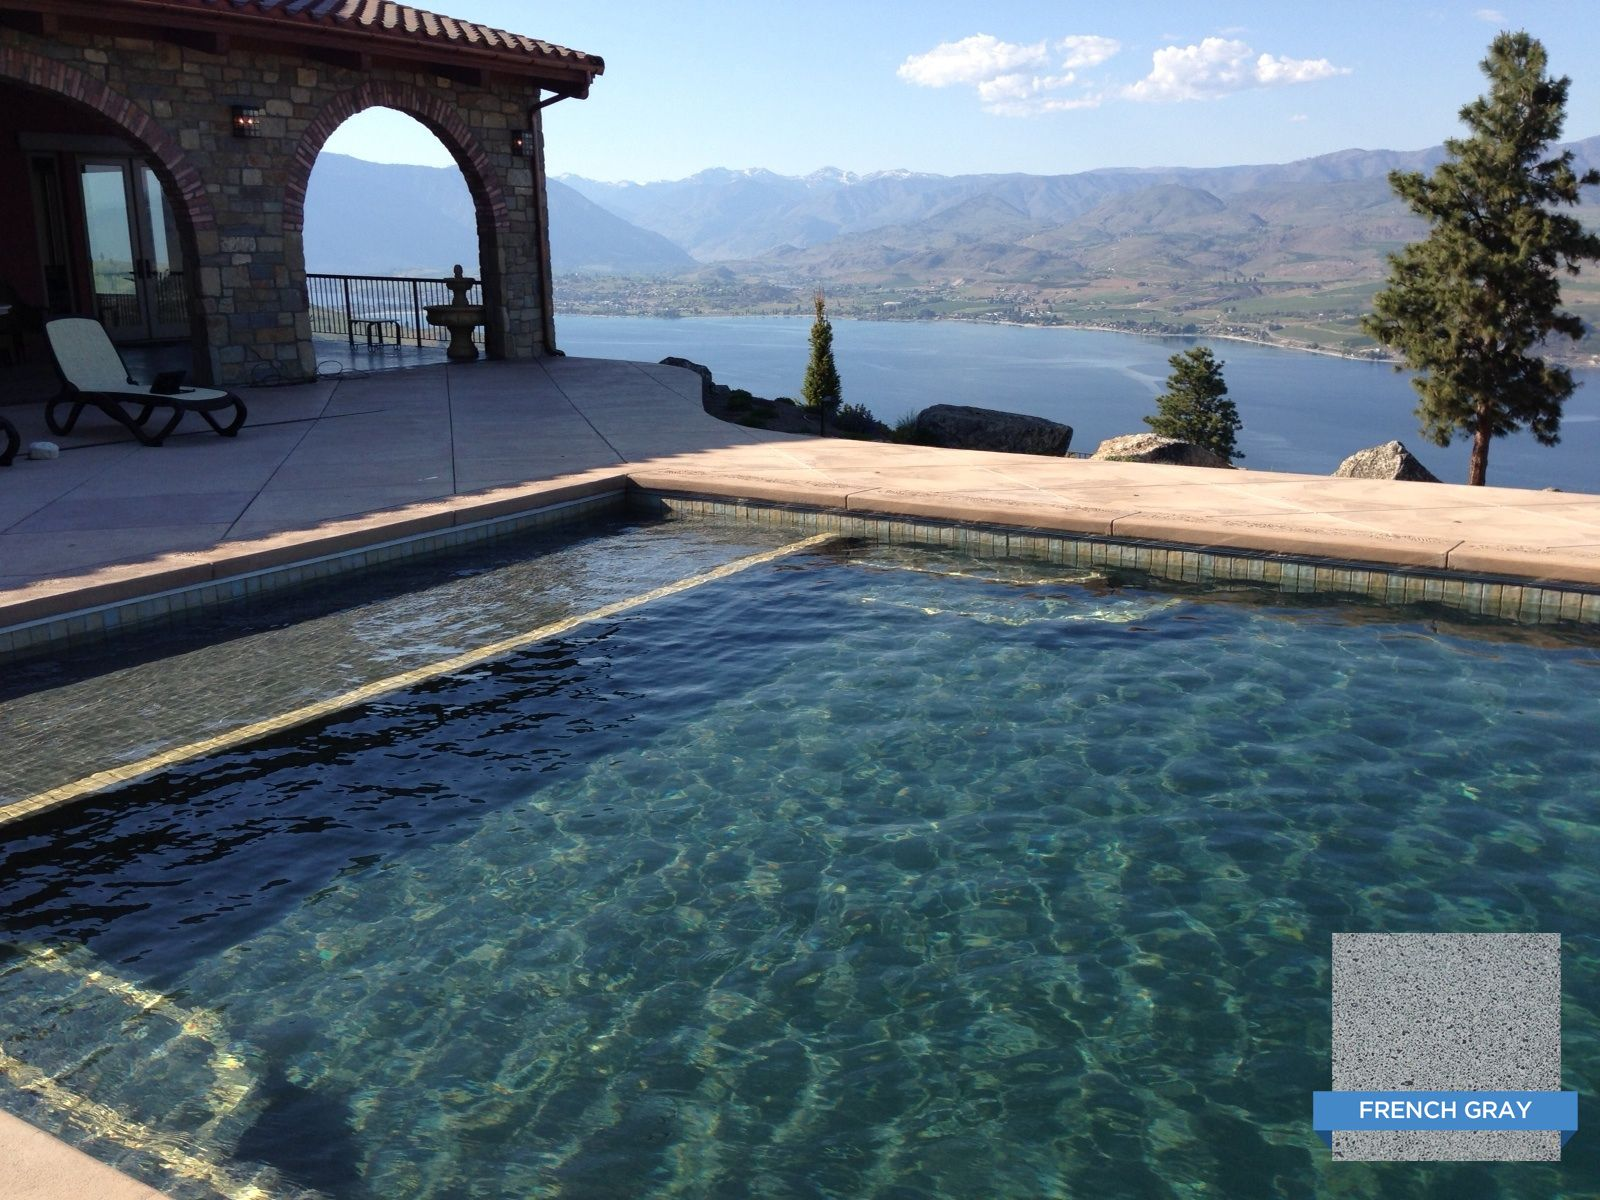 Hydrazzo French Gray In An Elegant Pool With A Million Dollar View